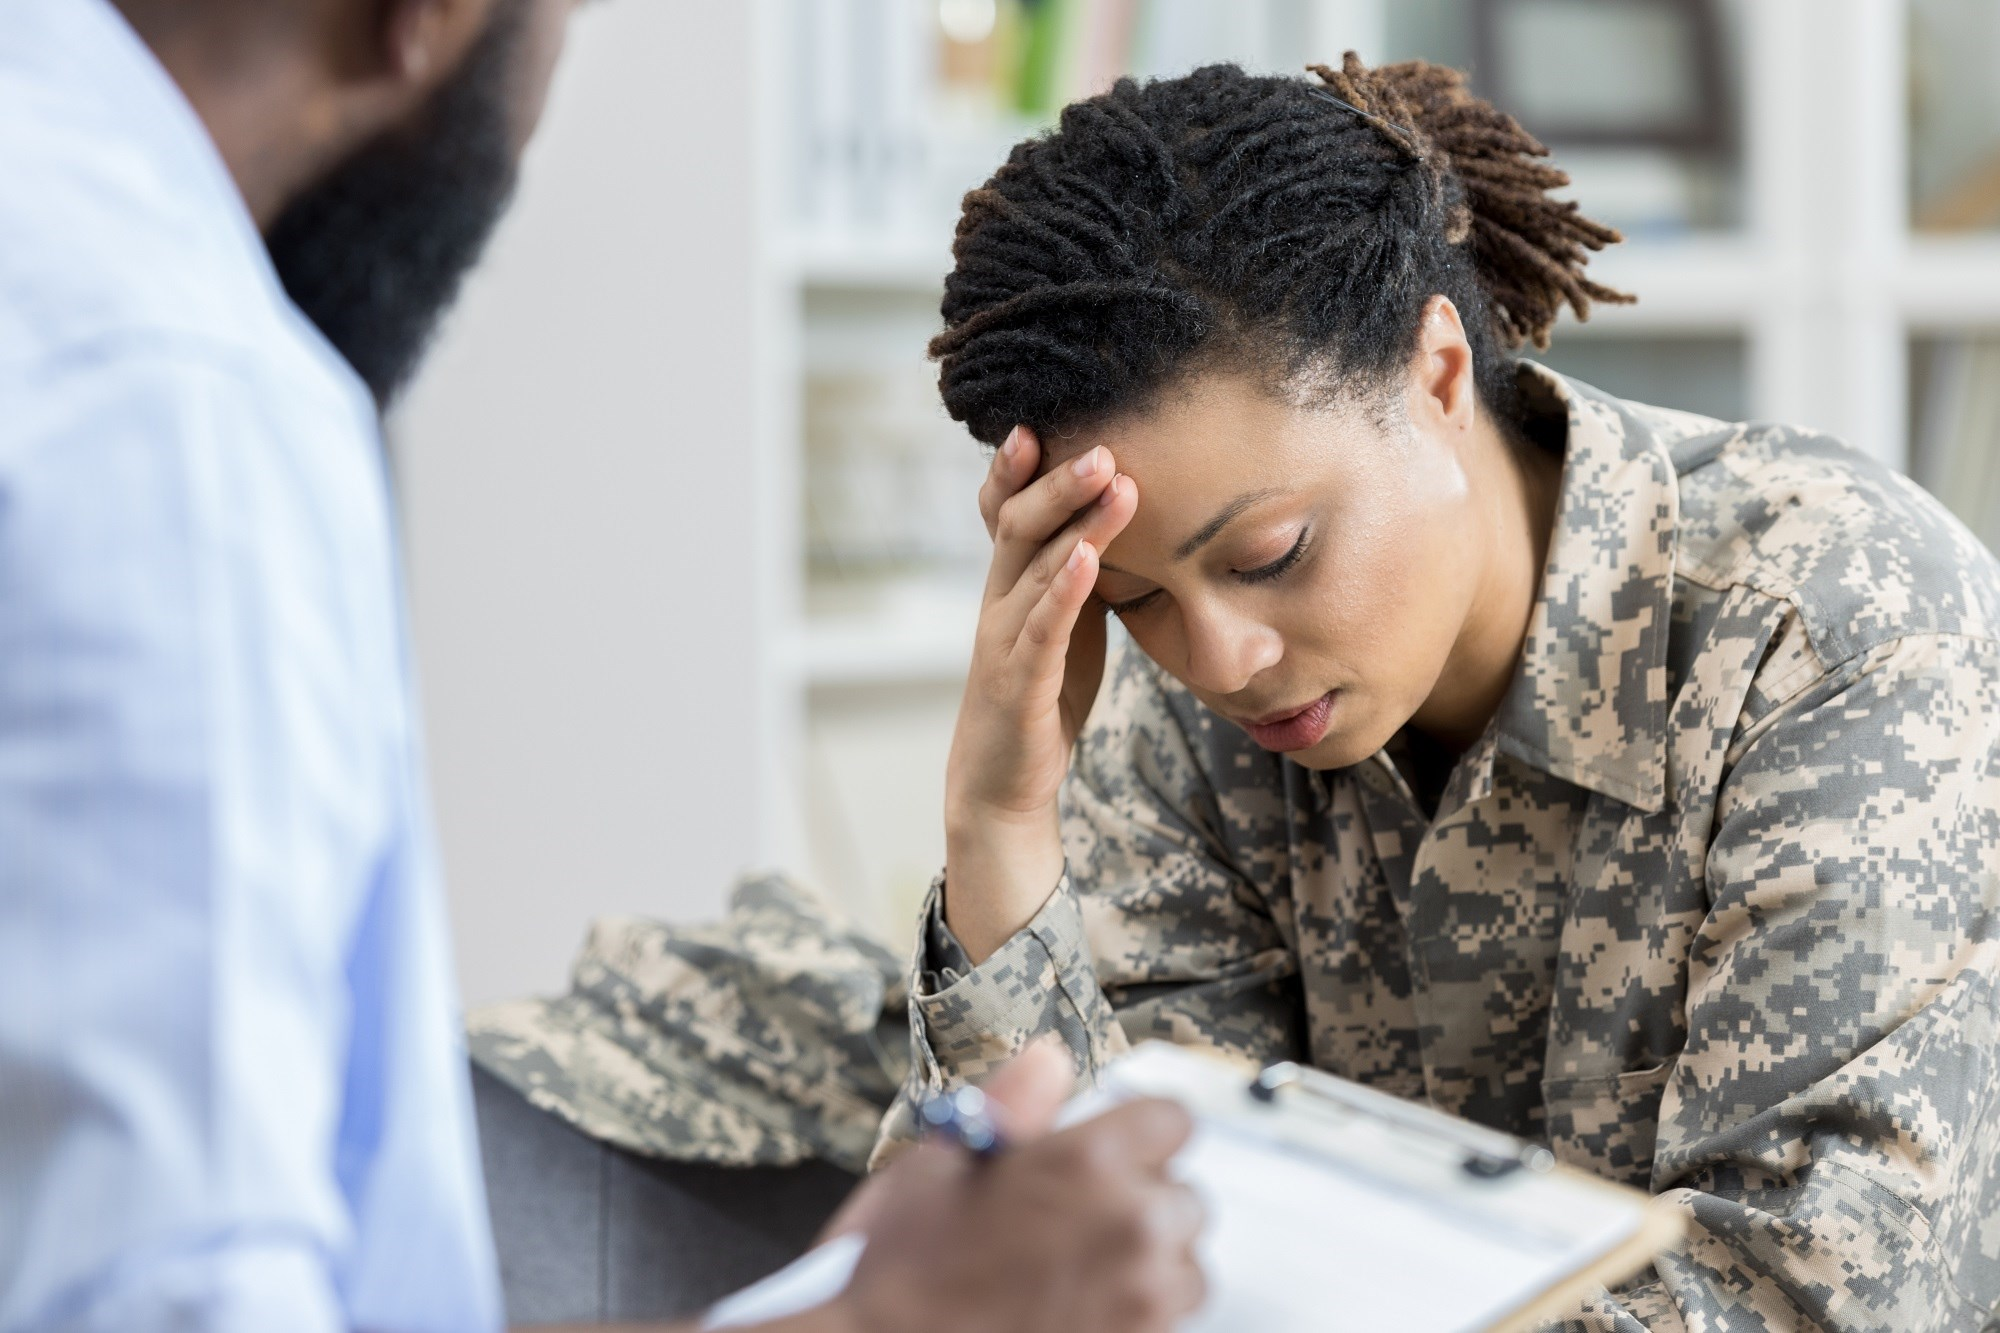 Women with military-related risk factors have an increased risk for developing dementia.